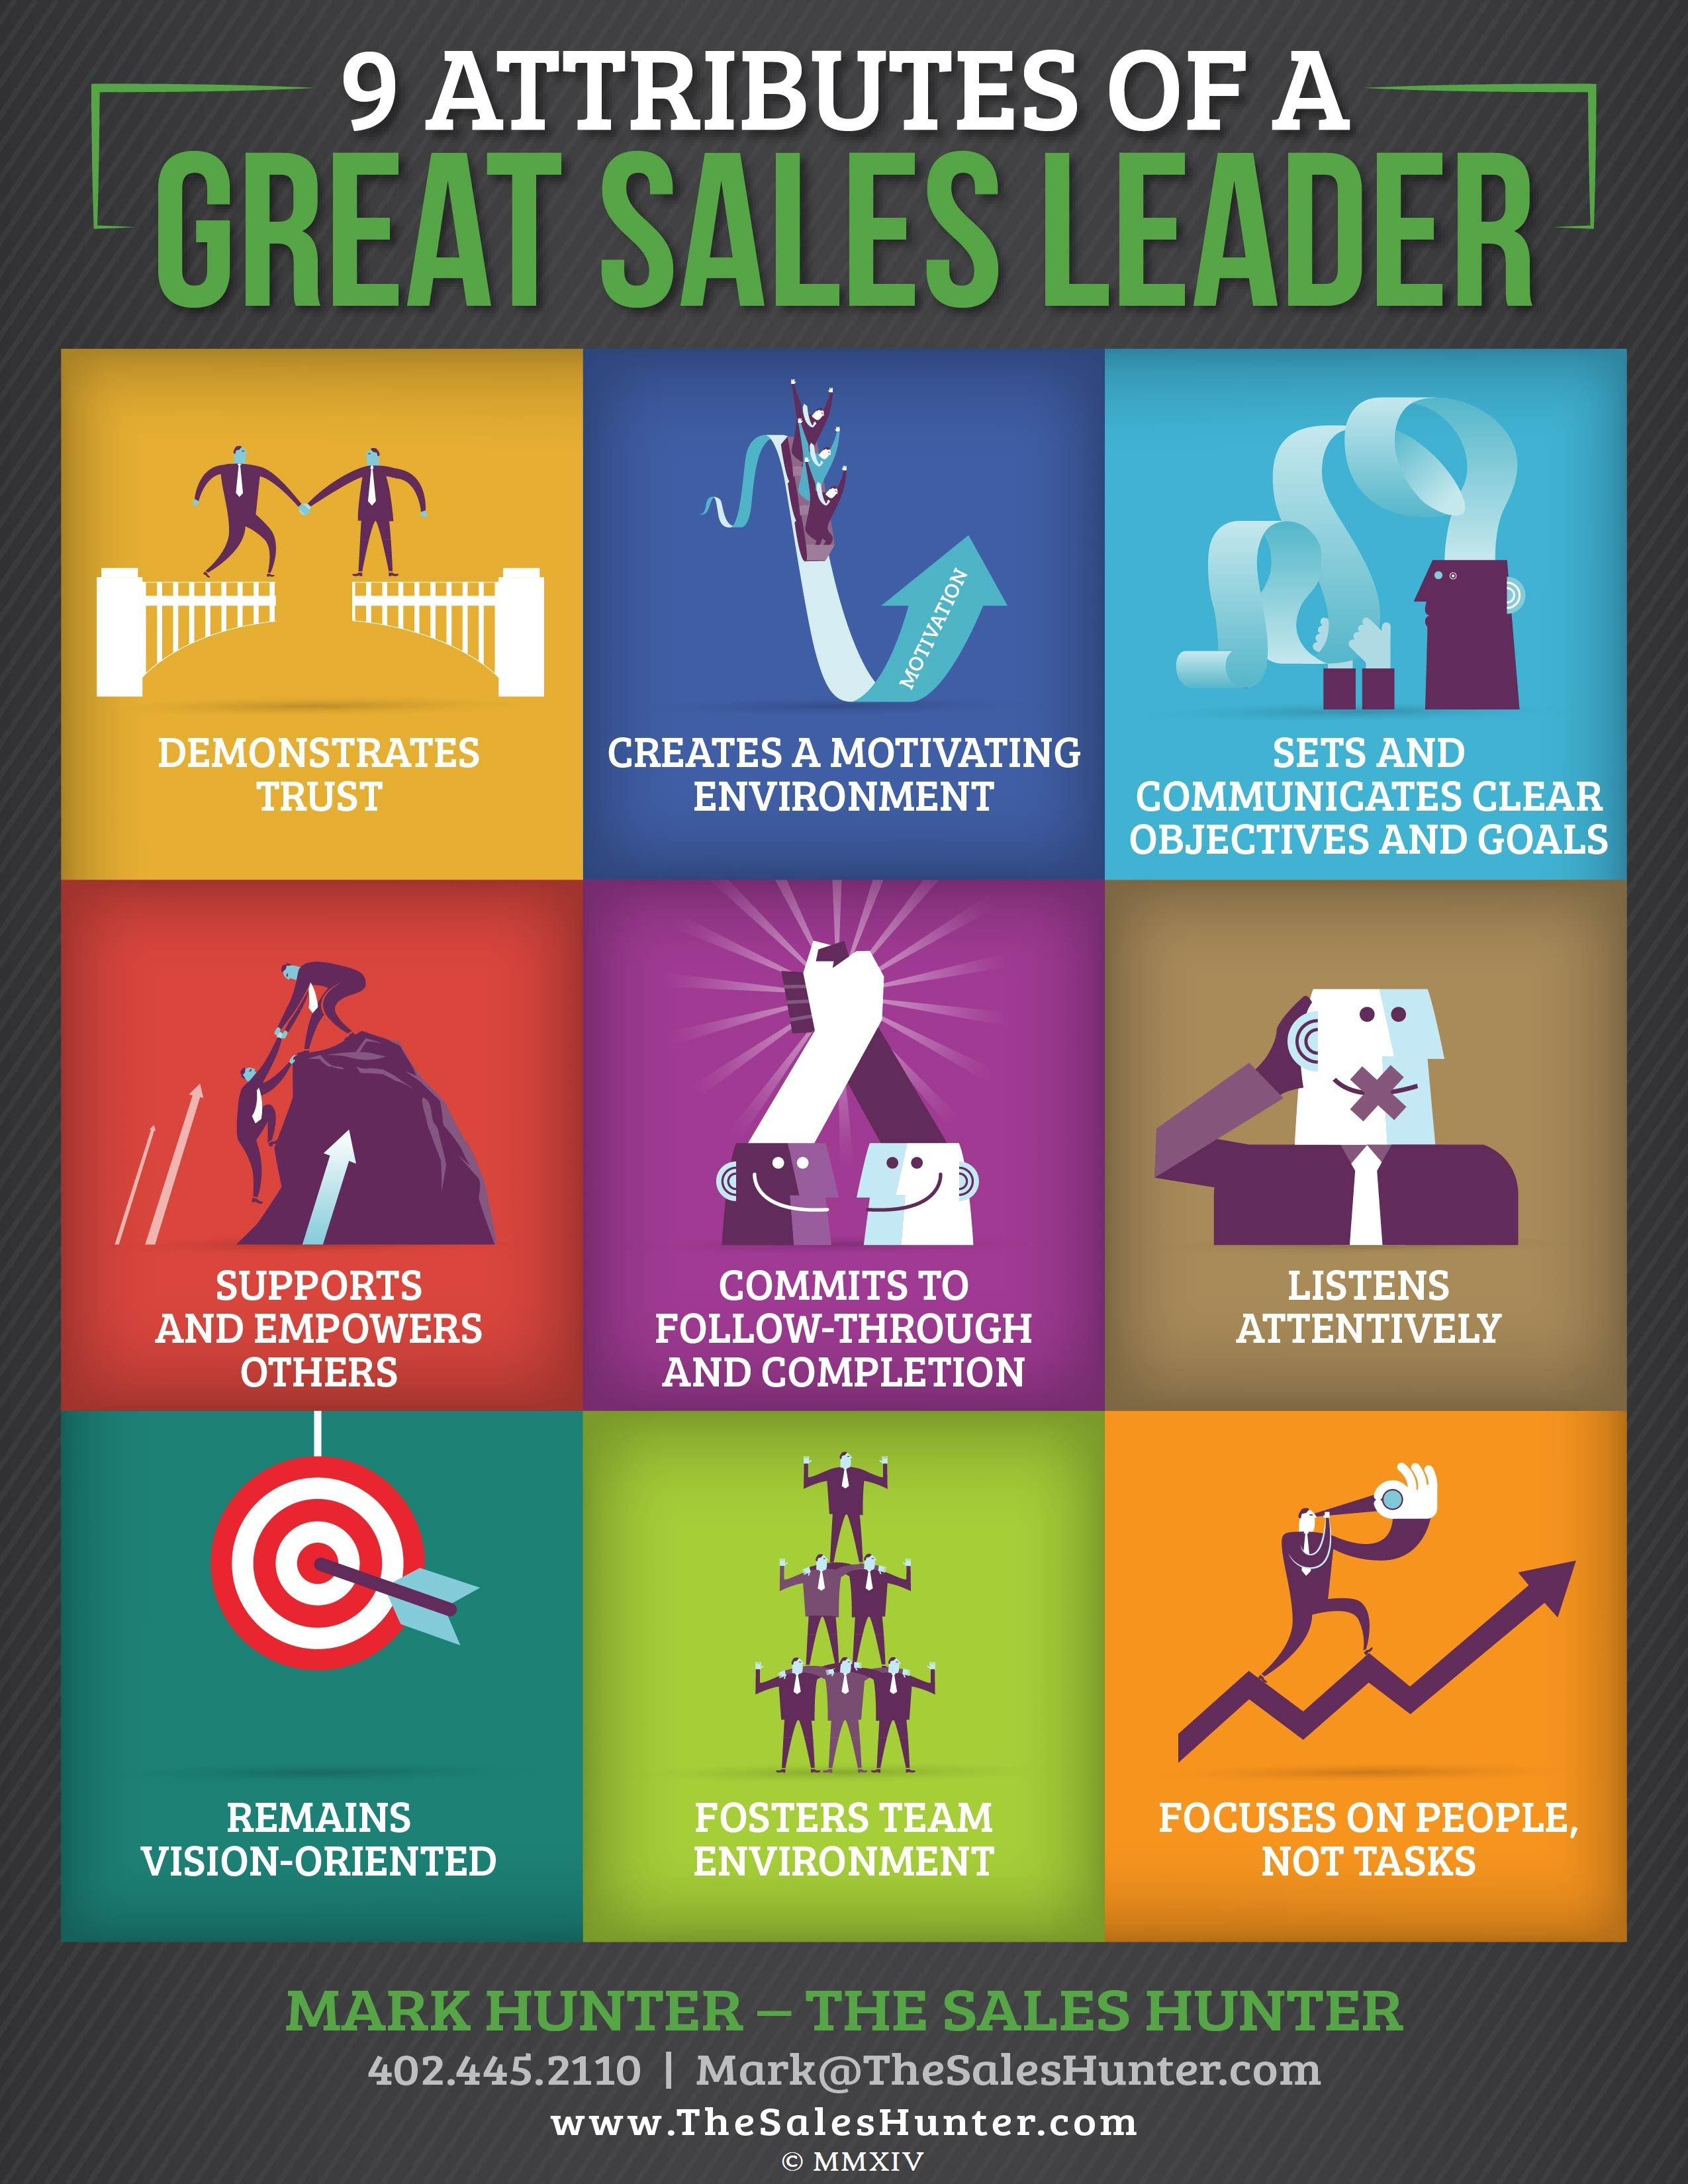 9 Attributes Of A Great Sales Leader Infographic Attributes Business Infographic